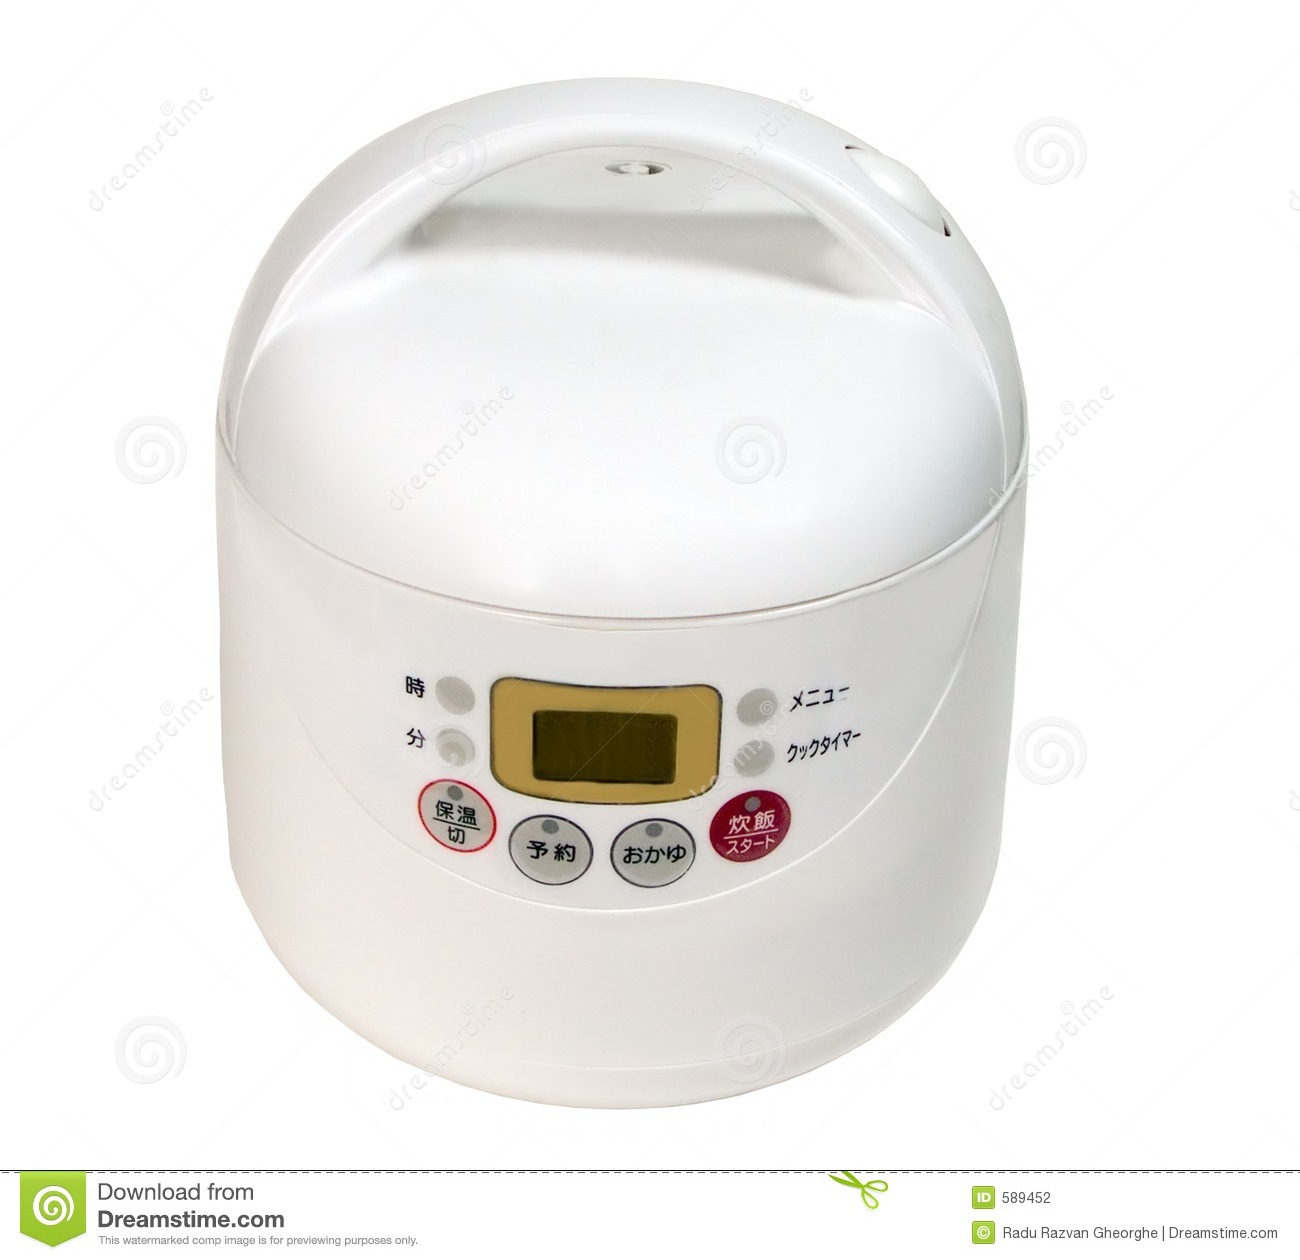 Pressure Cooker Rice Rice Cooking Machine Stock Photography - Image: 589452